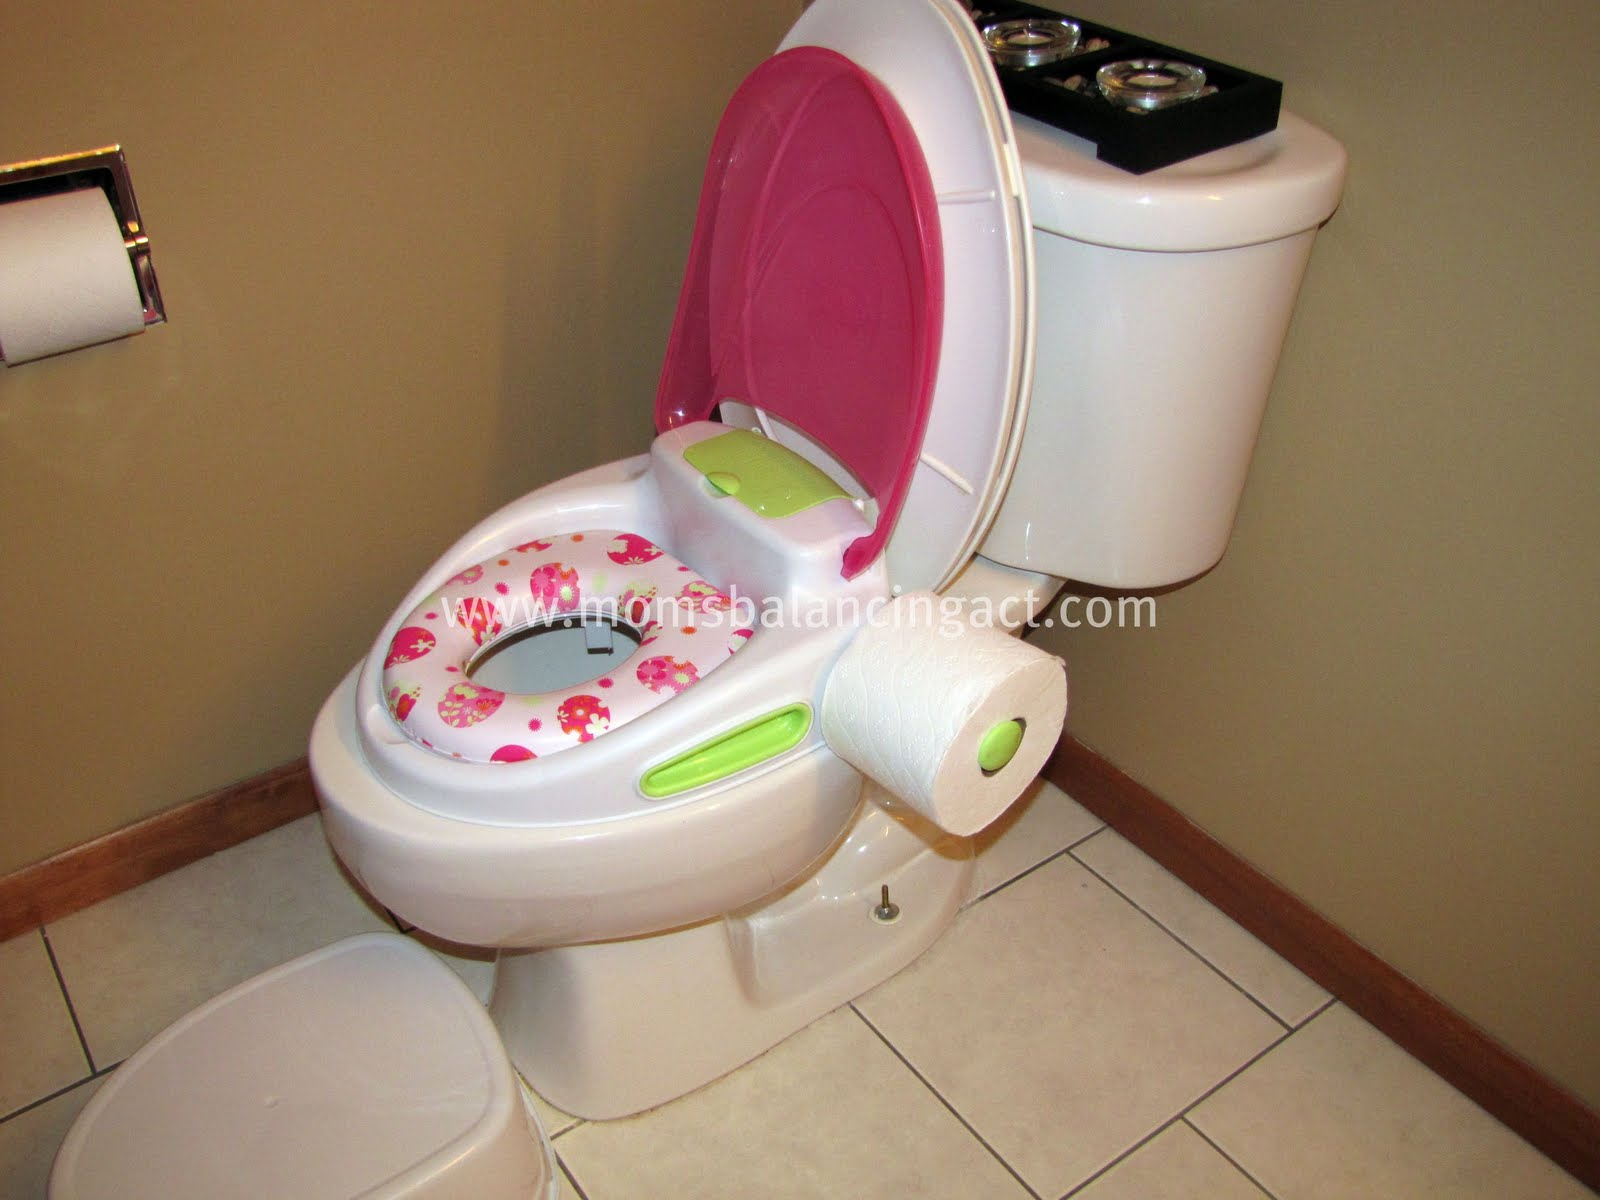 c1f27604252 Summer Infant ~ Step by Step Potty Trainer   Step Stool Review and Giveaway  (Winner chooses color!)